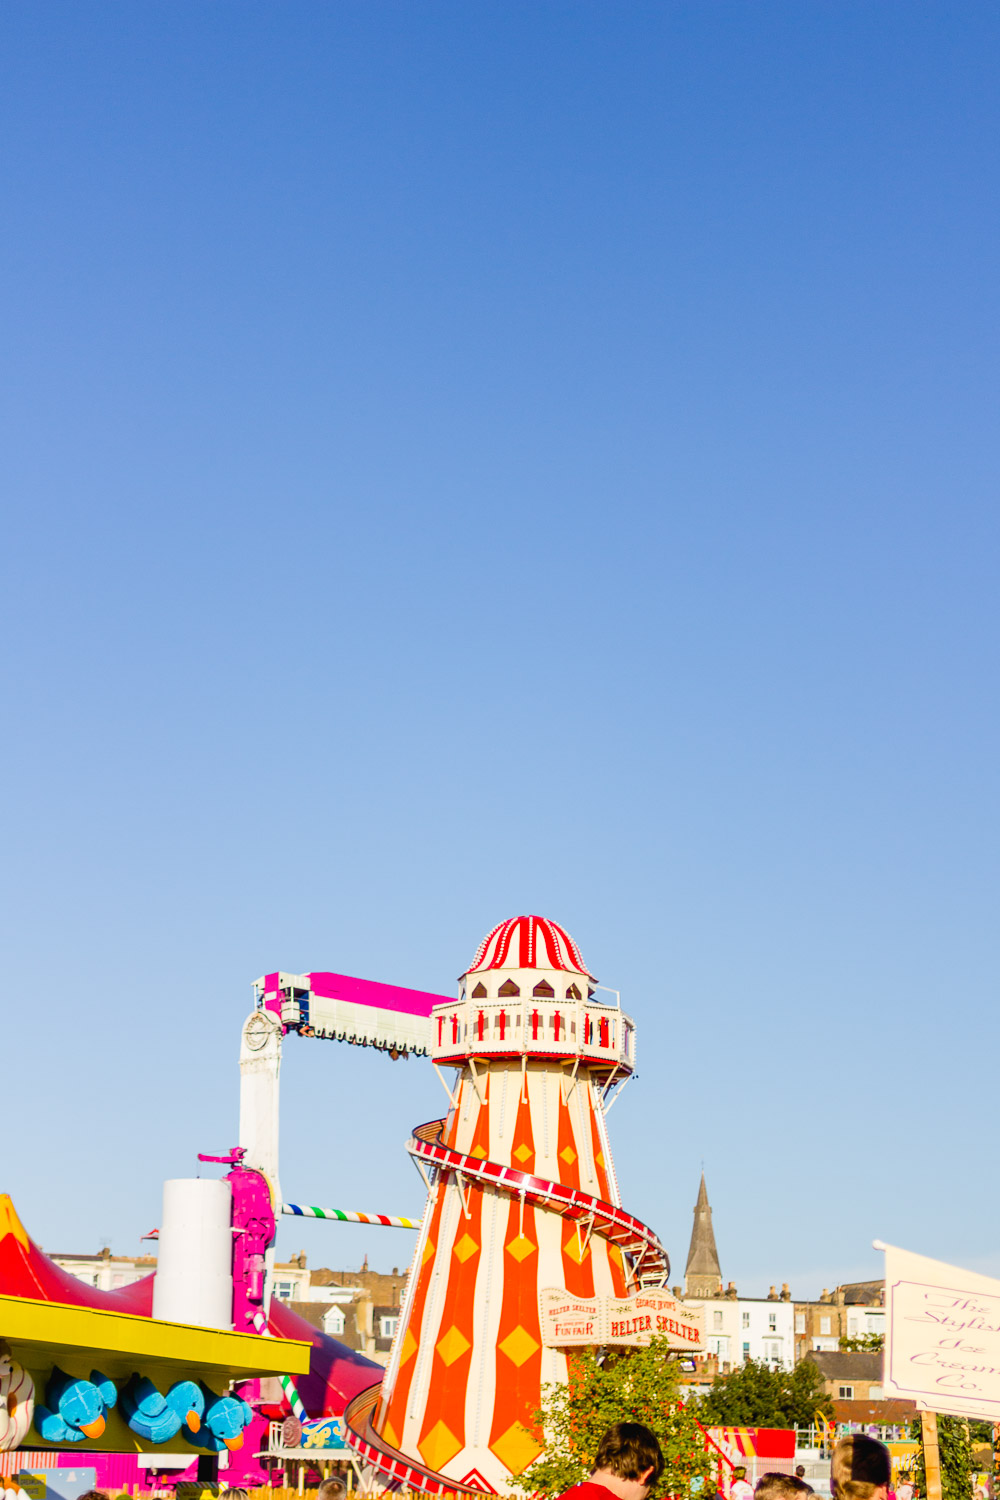 margate dreamland helter skelter blue sky summer